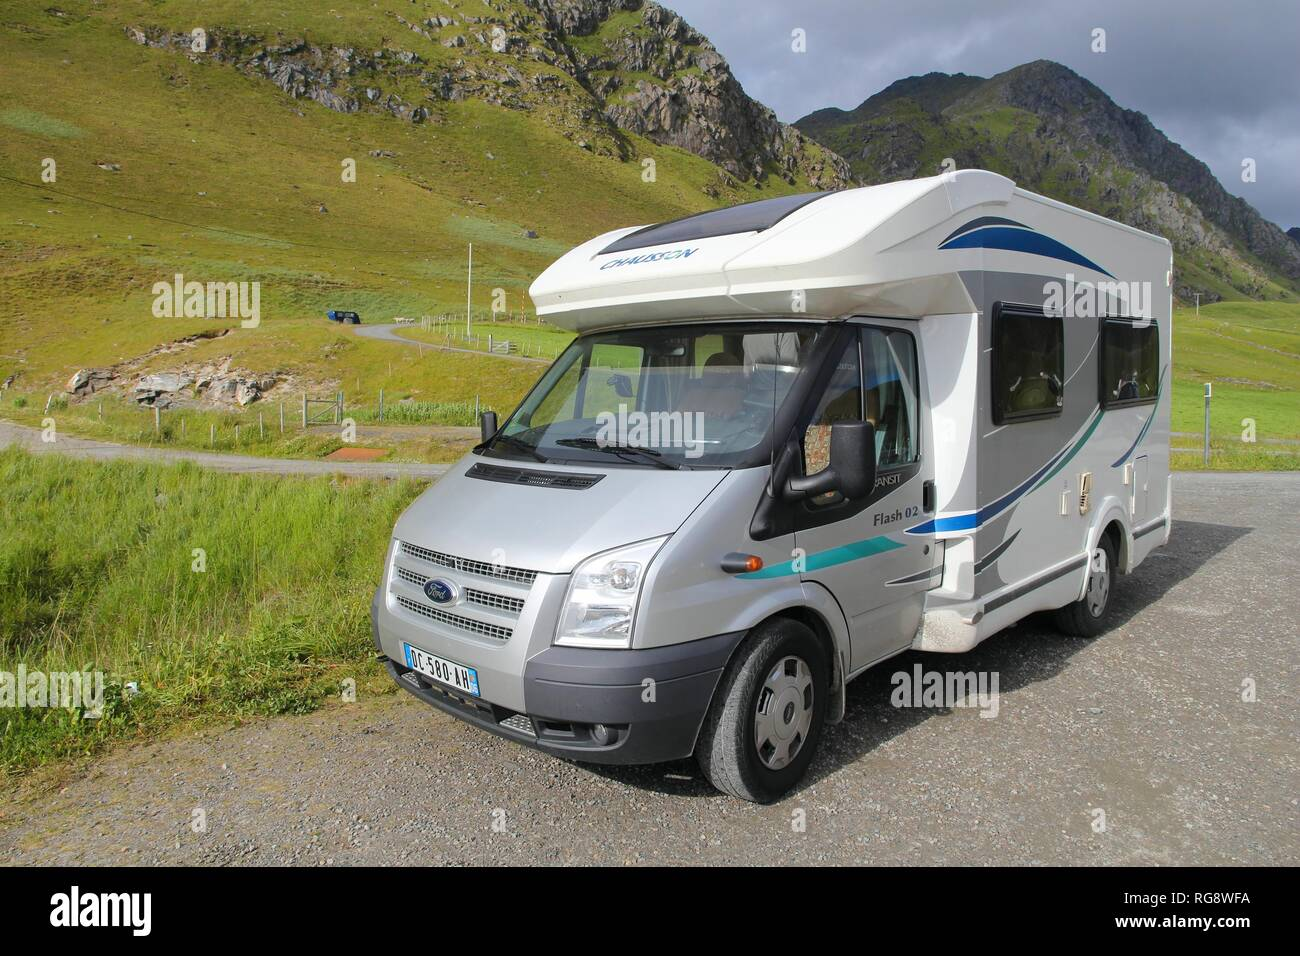 9c540764fd Ford Motorhome Stock Photos   Ford Motorhome Stock Images - Alamy